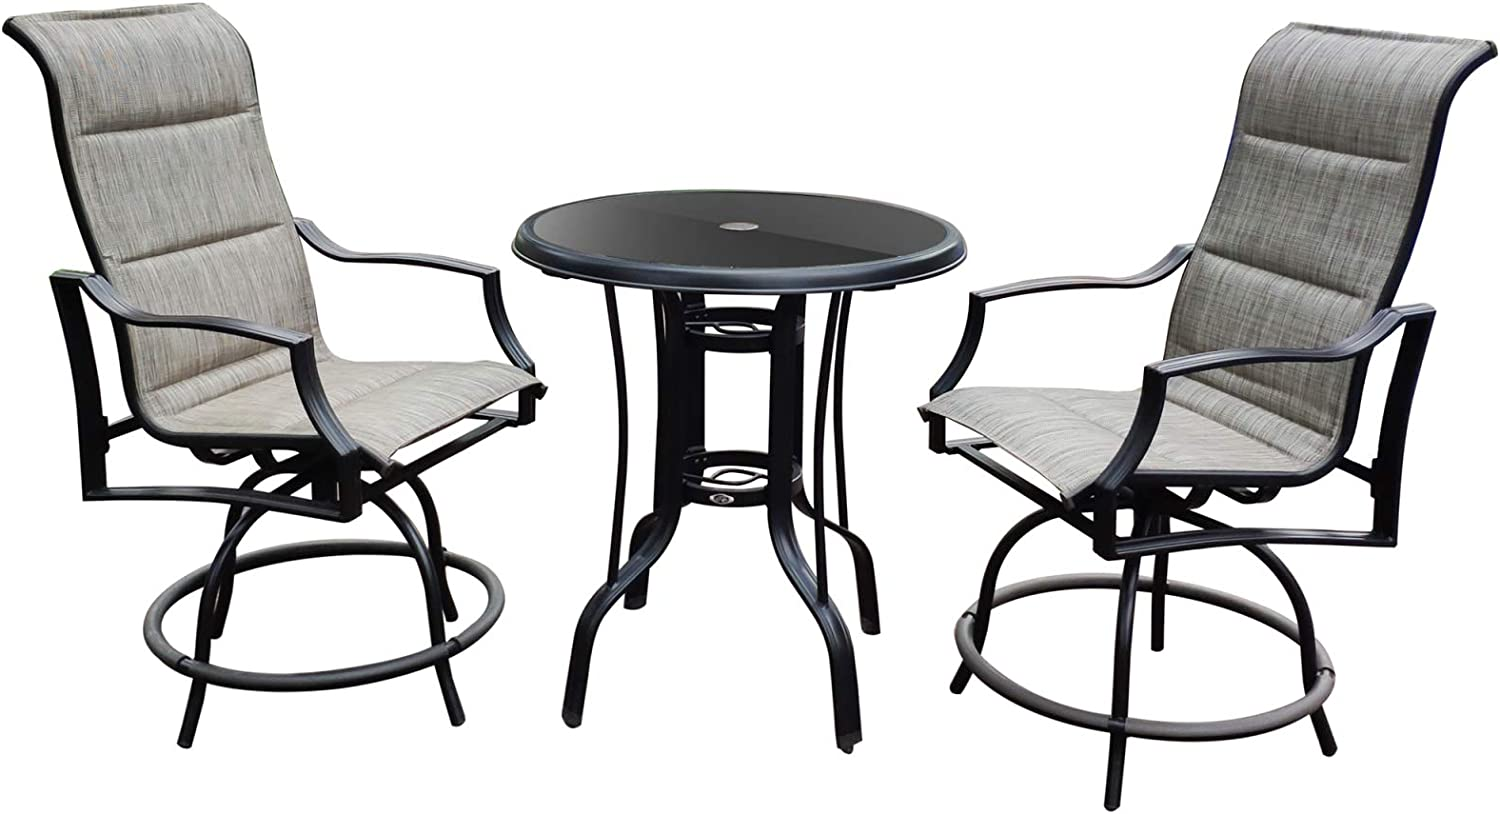 Povkeever 3Pcs Glass Round Bar Table and Textlene Swivel Bar Chair Set for Outdoor Furniture Patio Swivel Bar Set Height Patio Bistro Set and 1 Table, Sets Suitable for Yard,Backyard and Garden